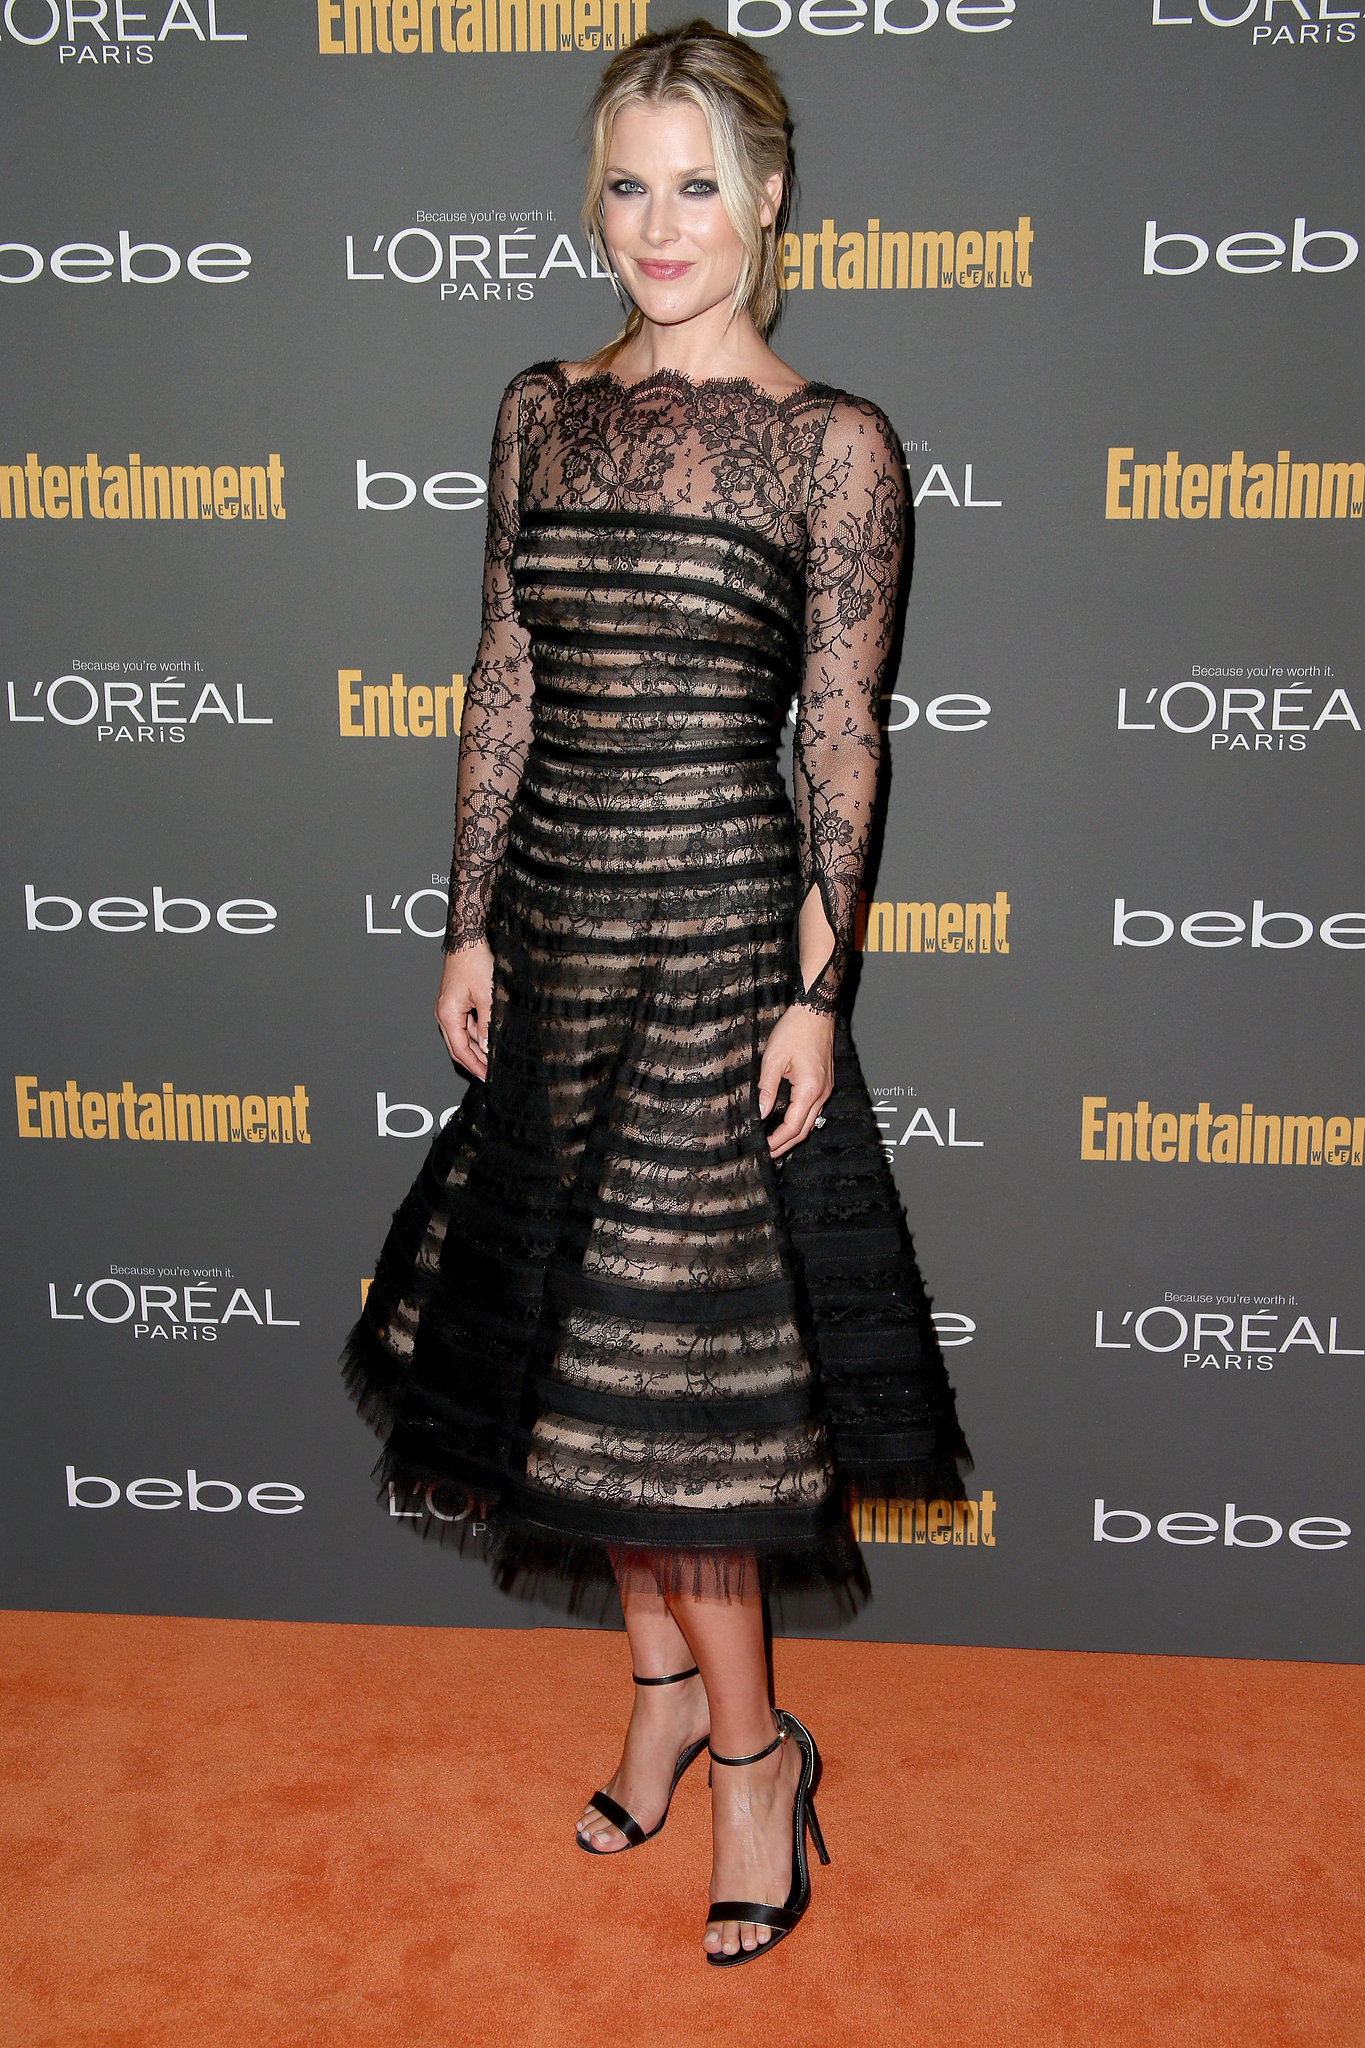 Ali Larter's black striped, lace fit-and-flare dress stood out for being ladylike o